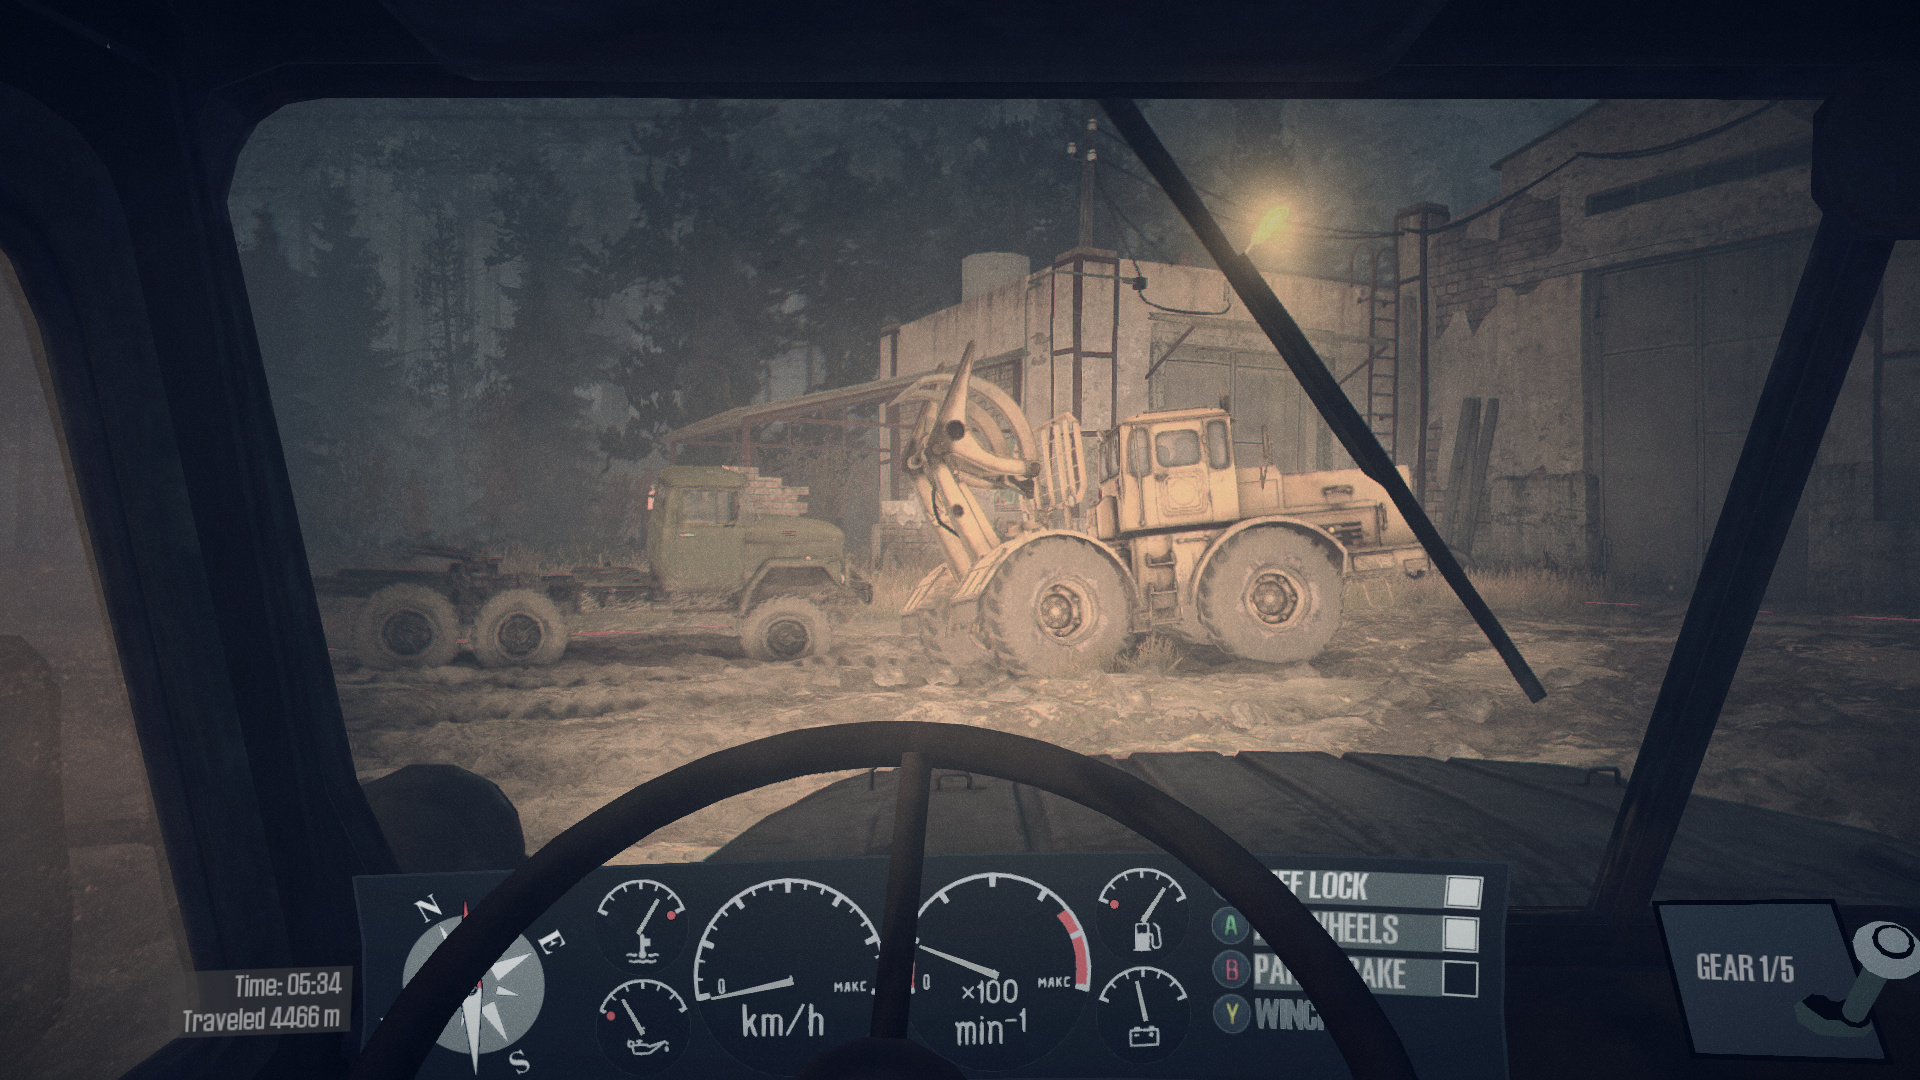 spintires k700 how to work grabber